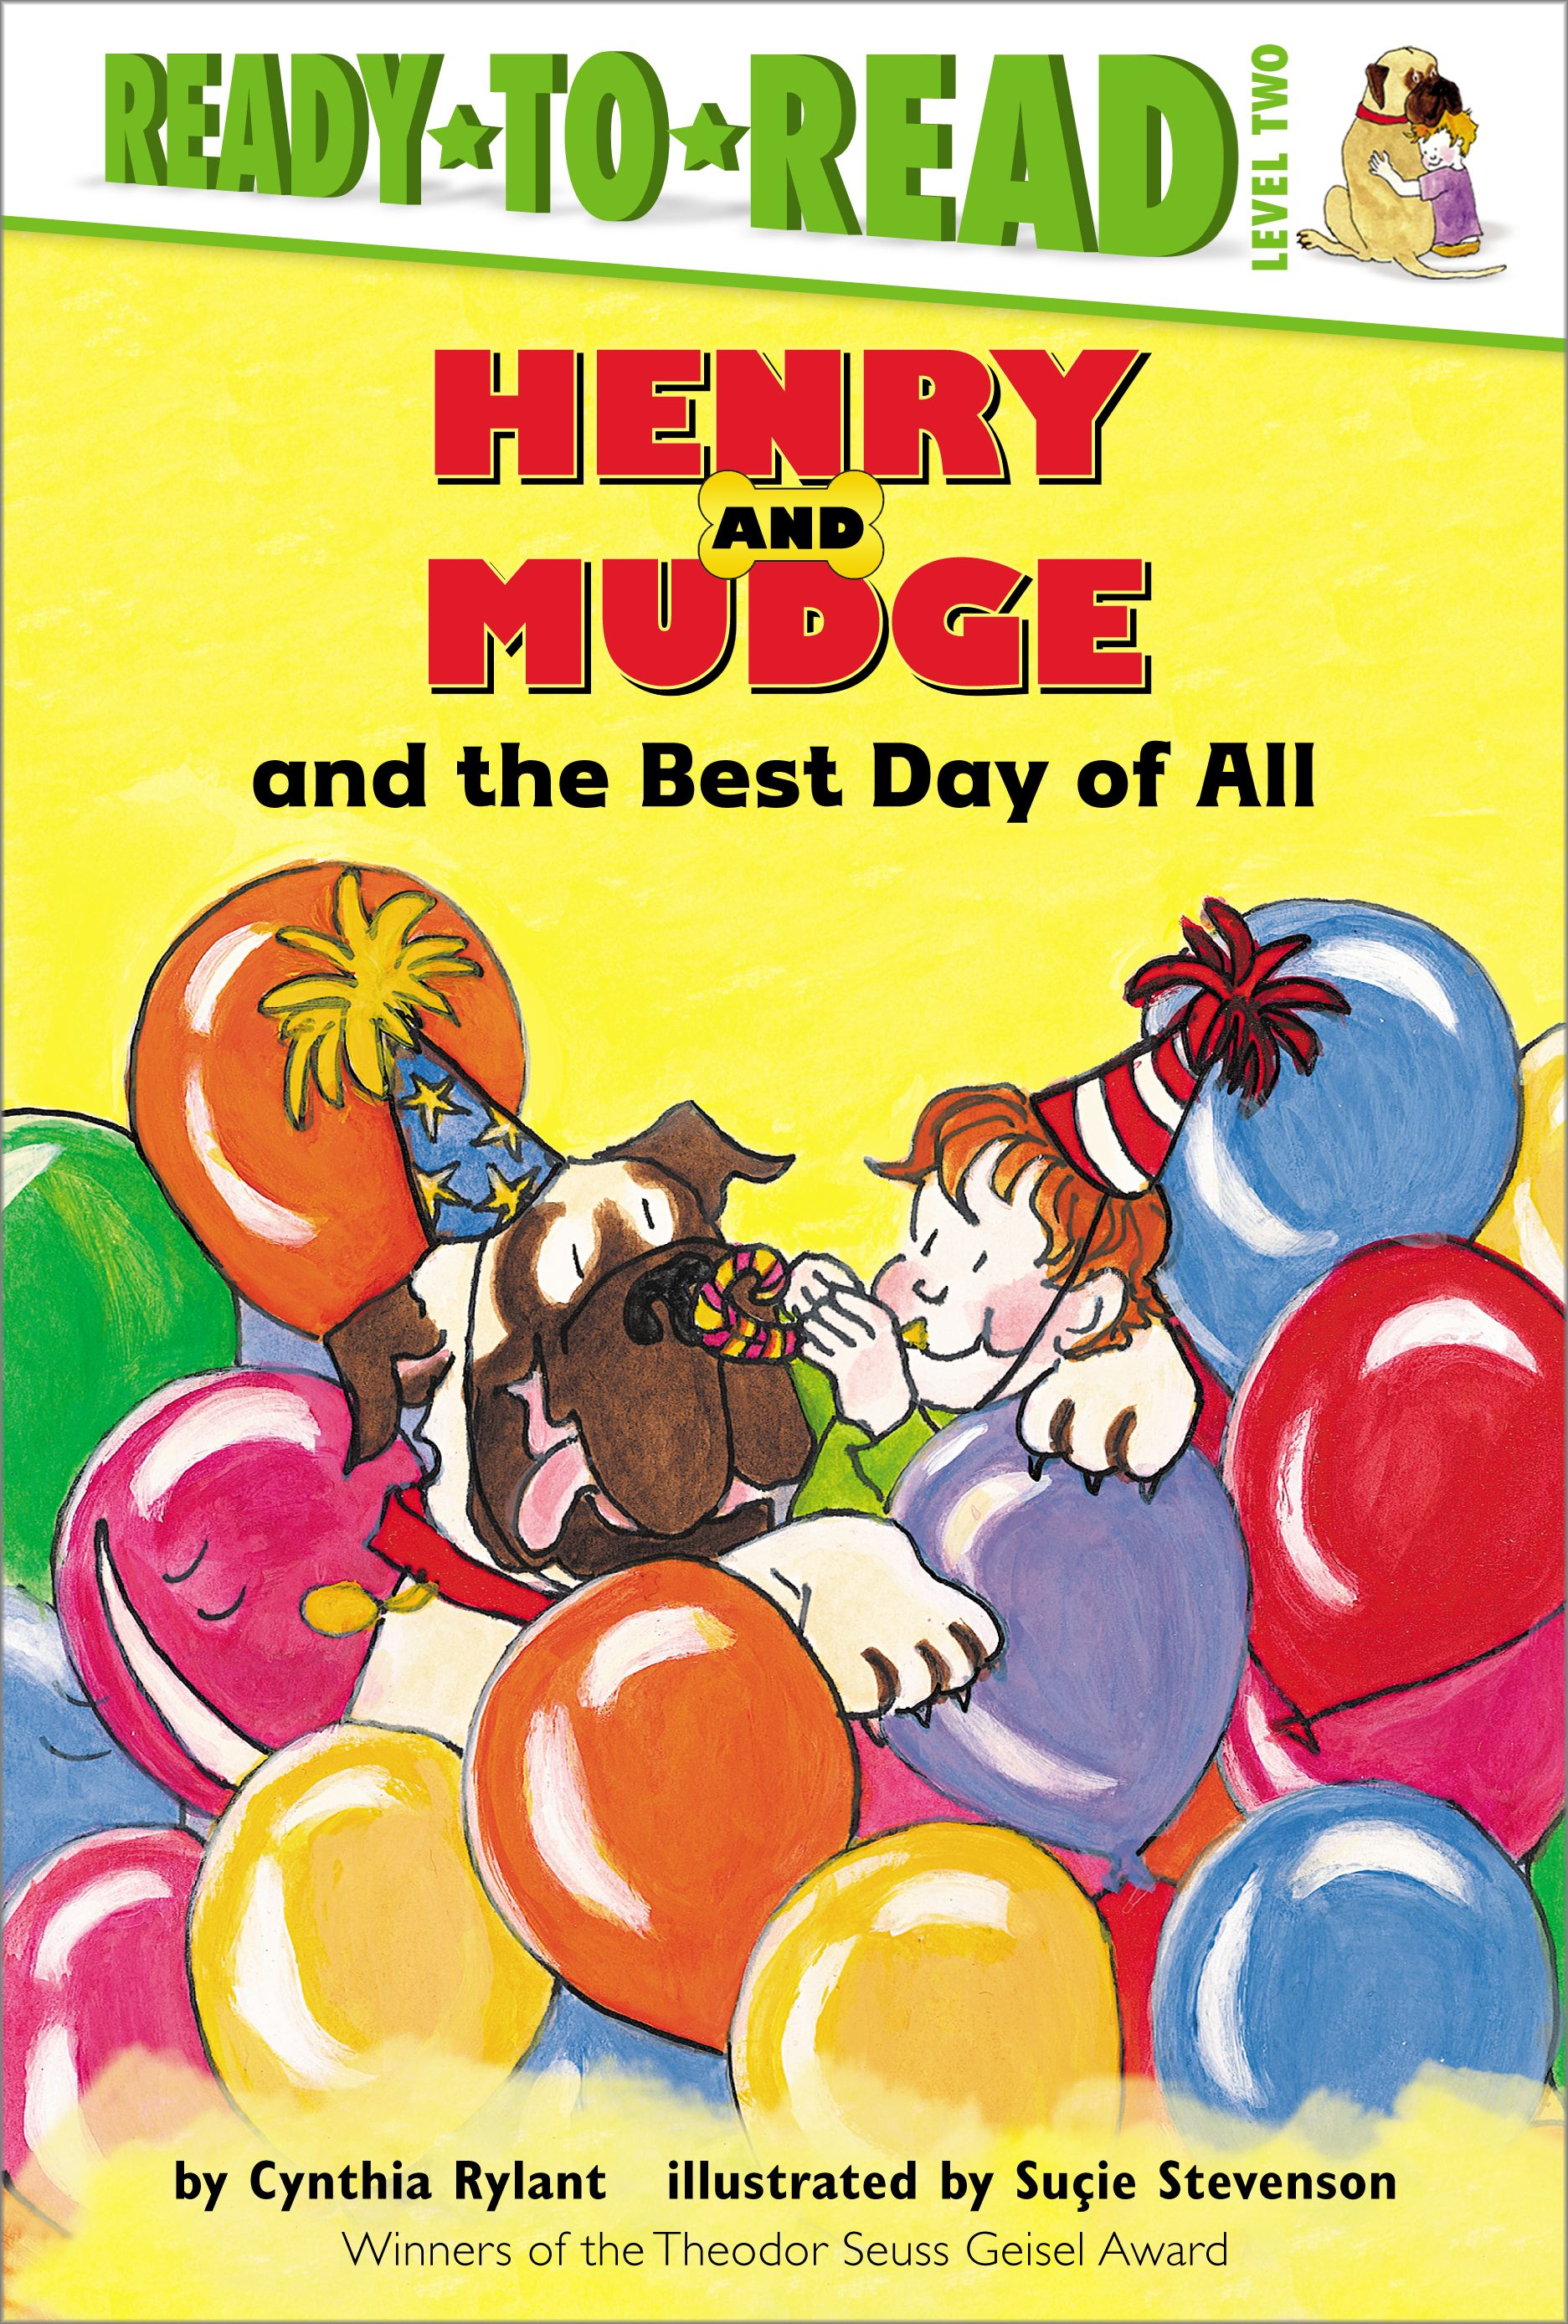 Henry-and-mudge-and-the-best-day-of-all-9780689810060_hr